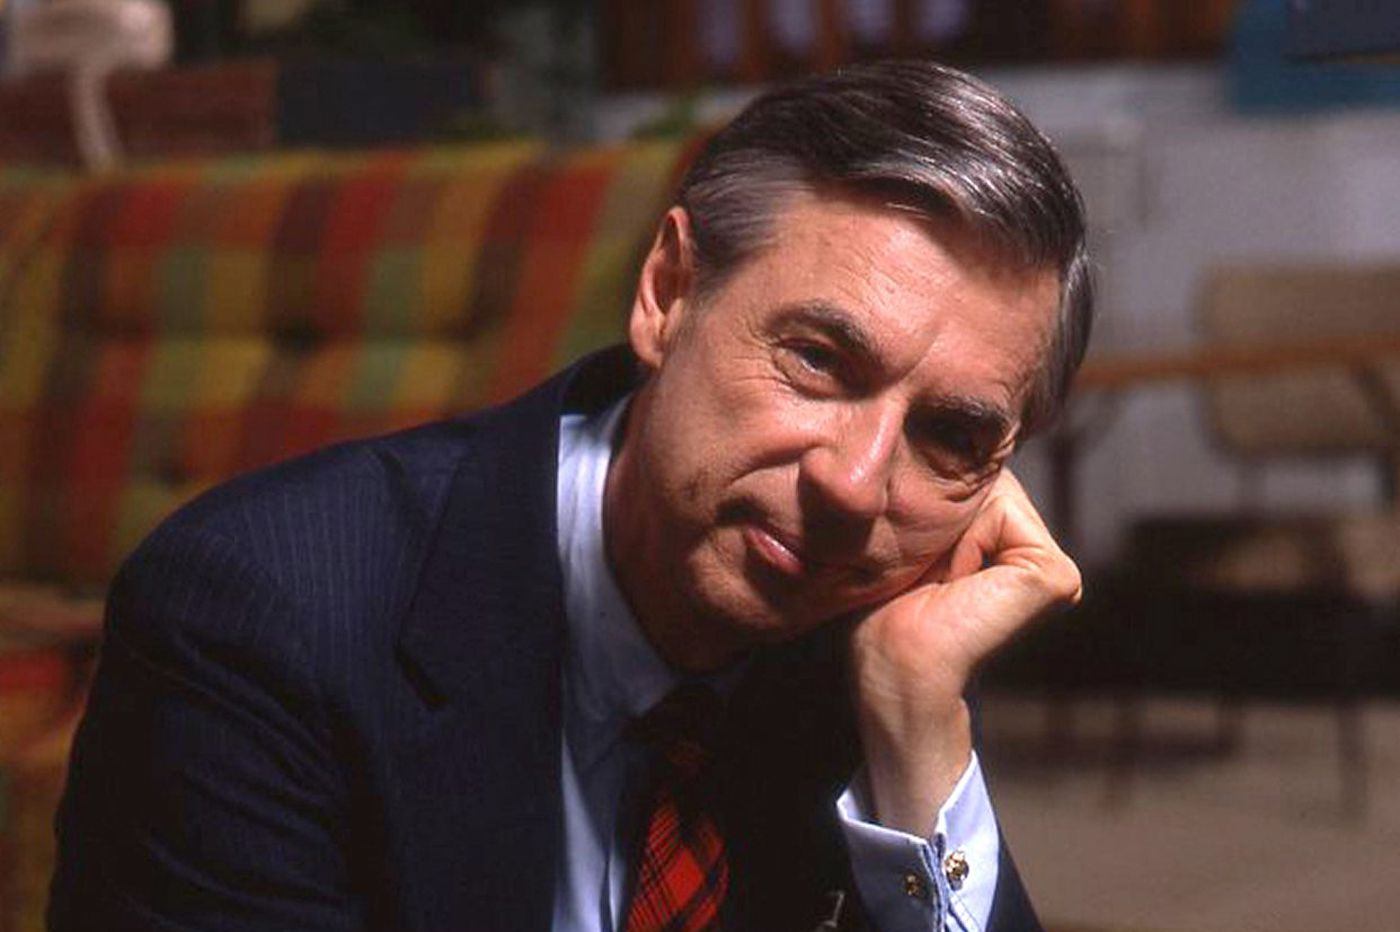 The first biography of Mr. Rogers ever published changed the man who wrote it for the better